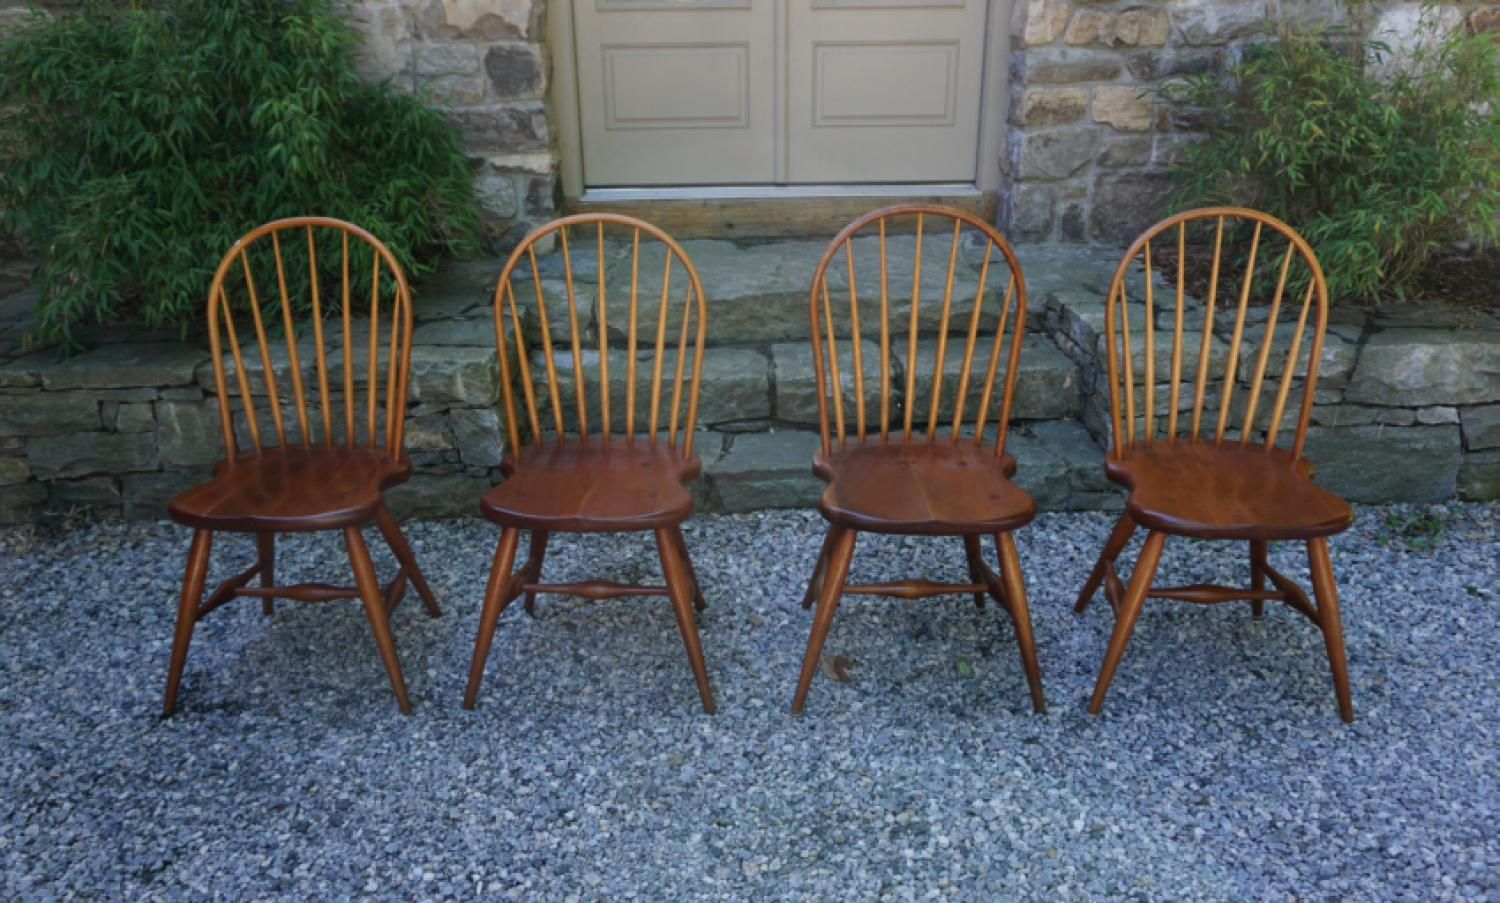 Vintage Frederick Duckloe Bros Windsor chairs